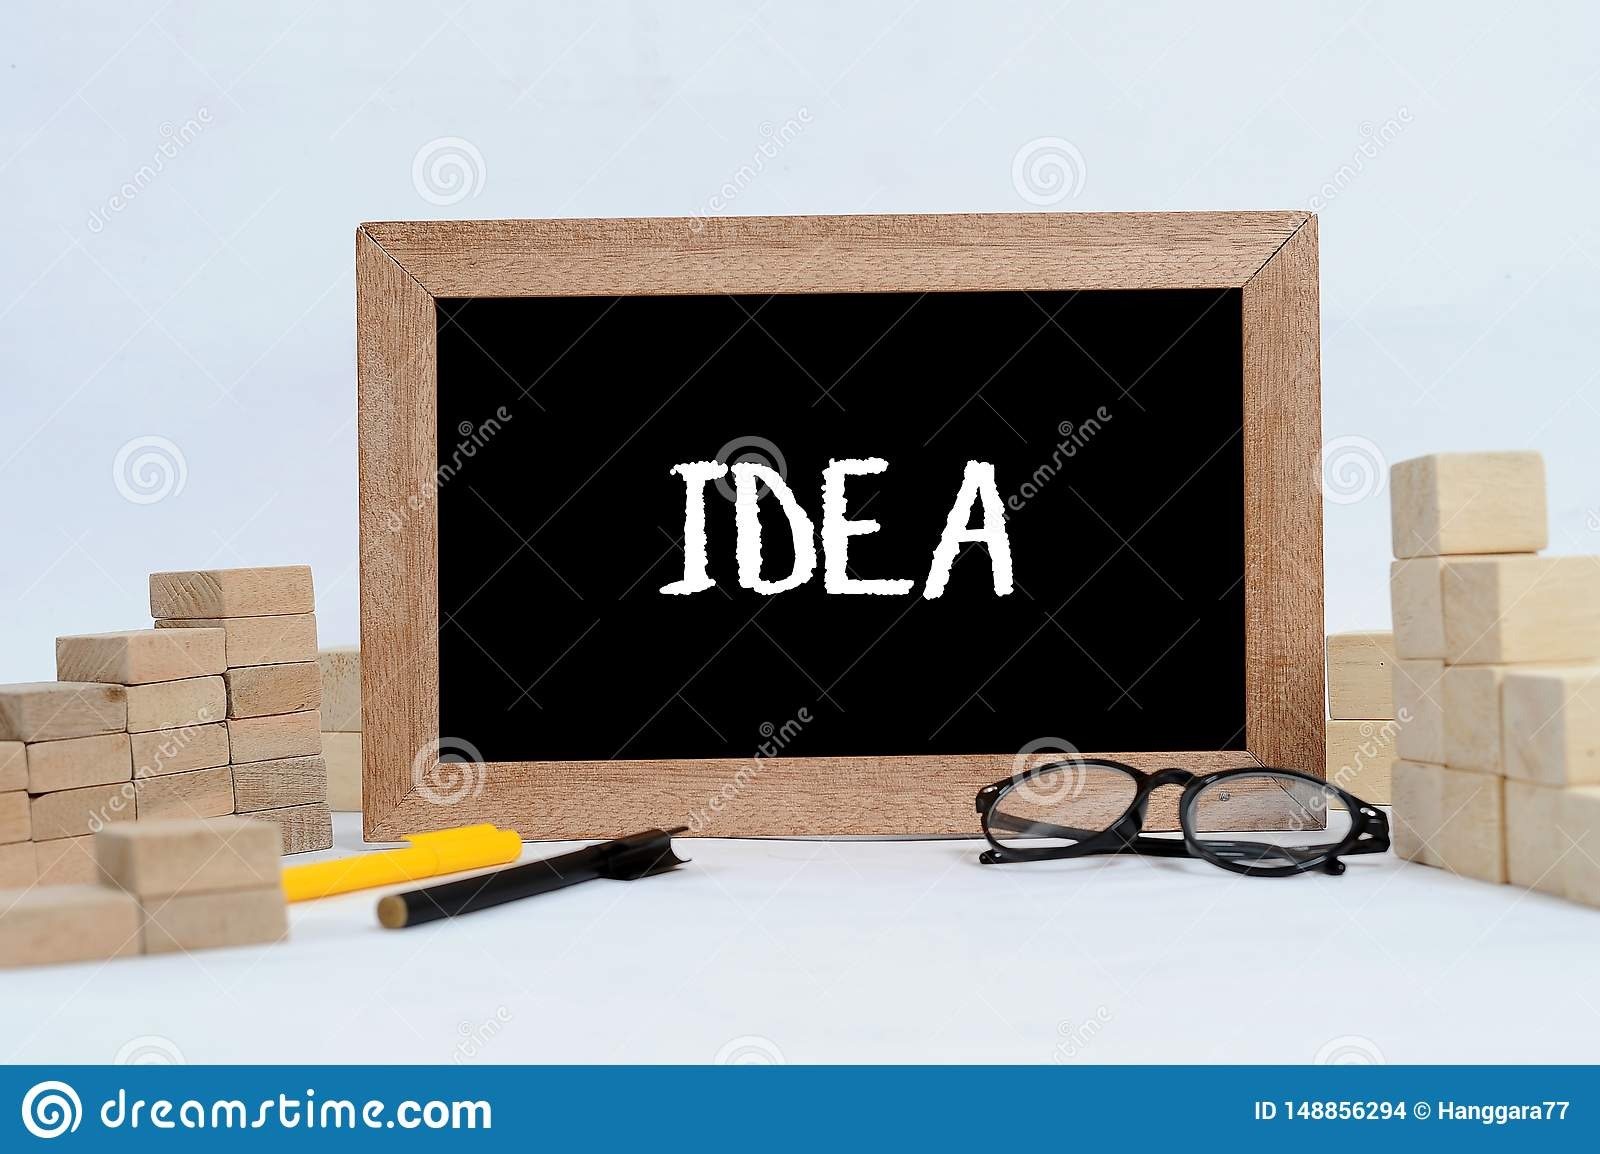 Find IDEA for business concept or business strategy to get best goal on good vision and mission in business target. IDEA text on